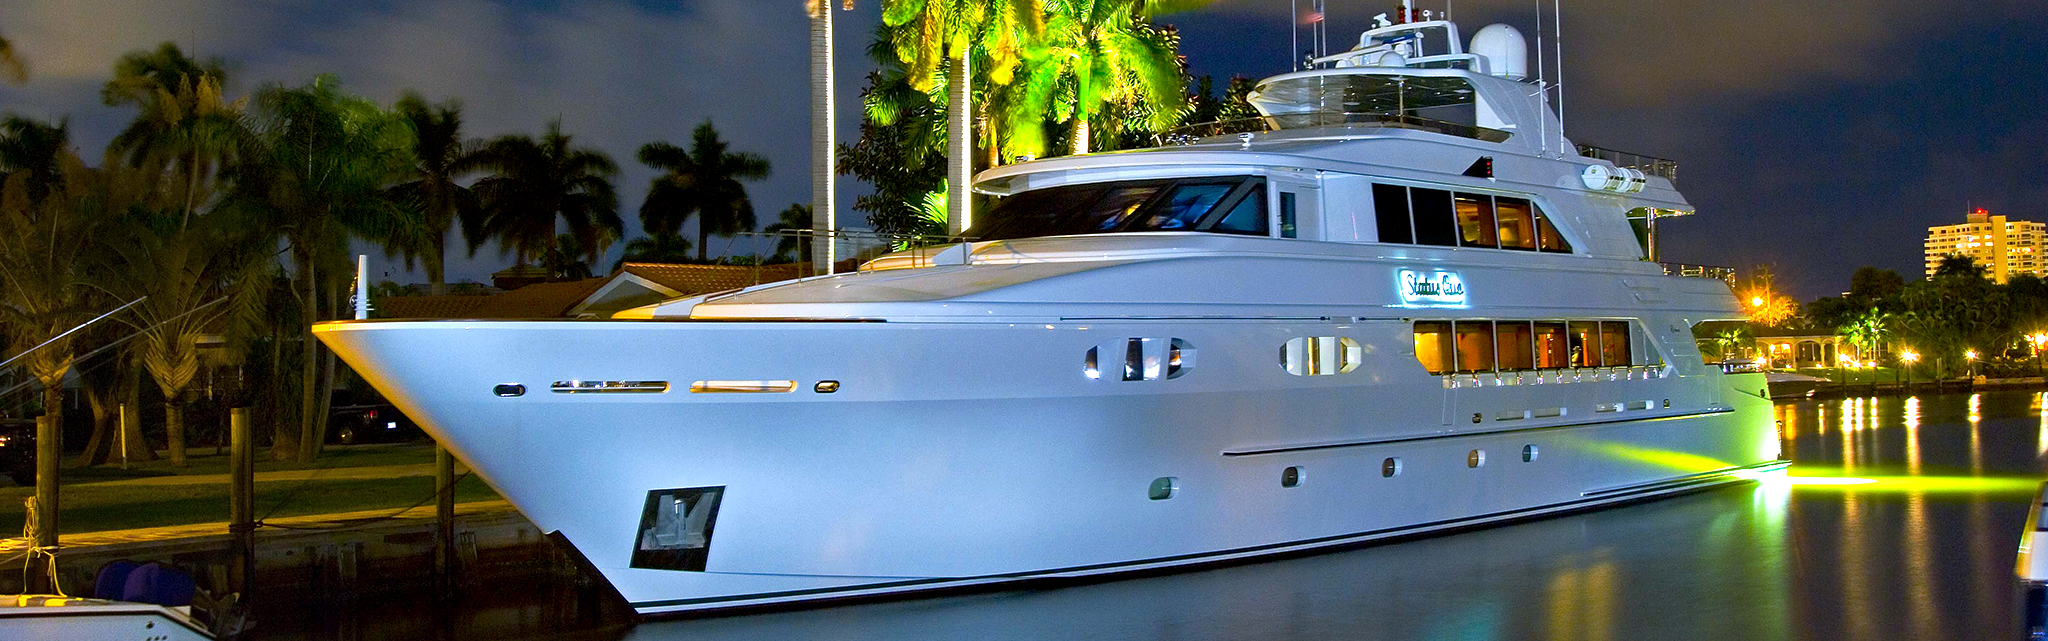 Significant Things to looks for in a yacht brokerage